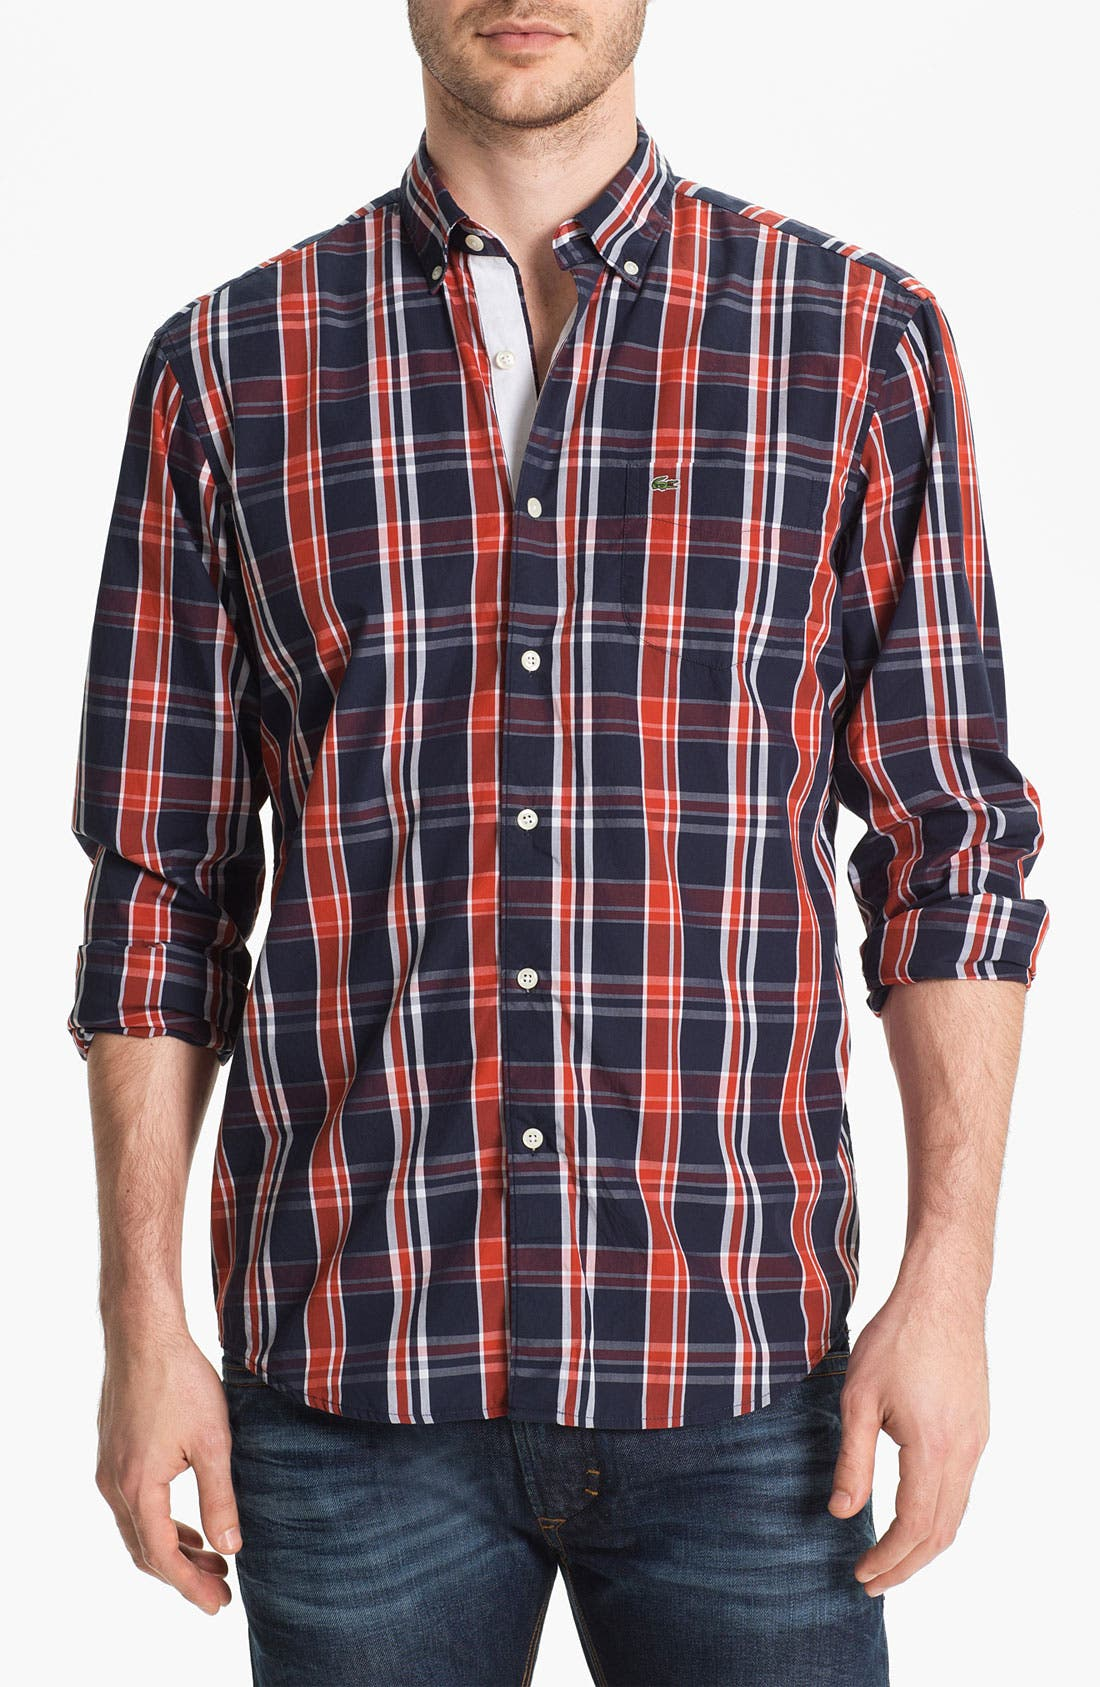 Alternate Image 1 Selected - Lacoste Plaid Woven Shirt